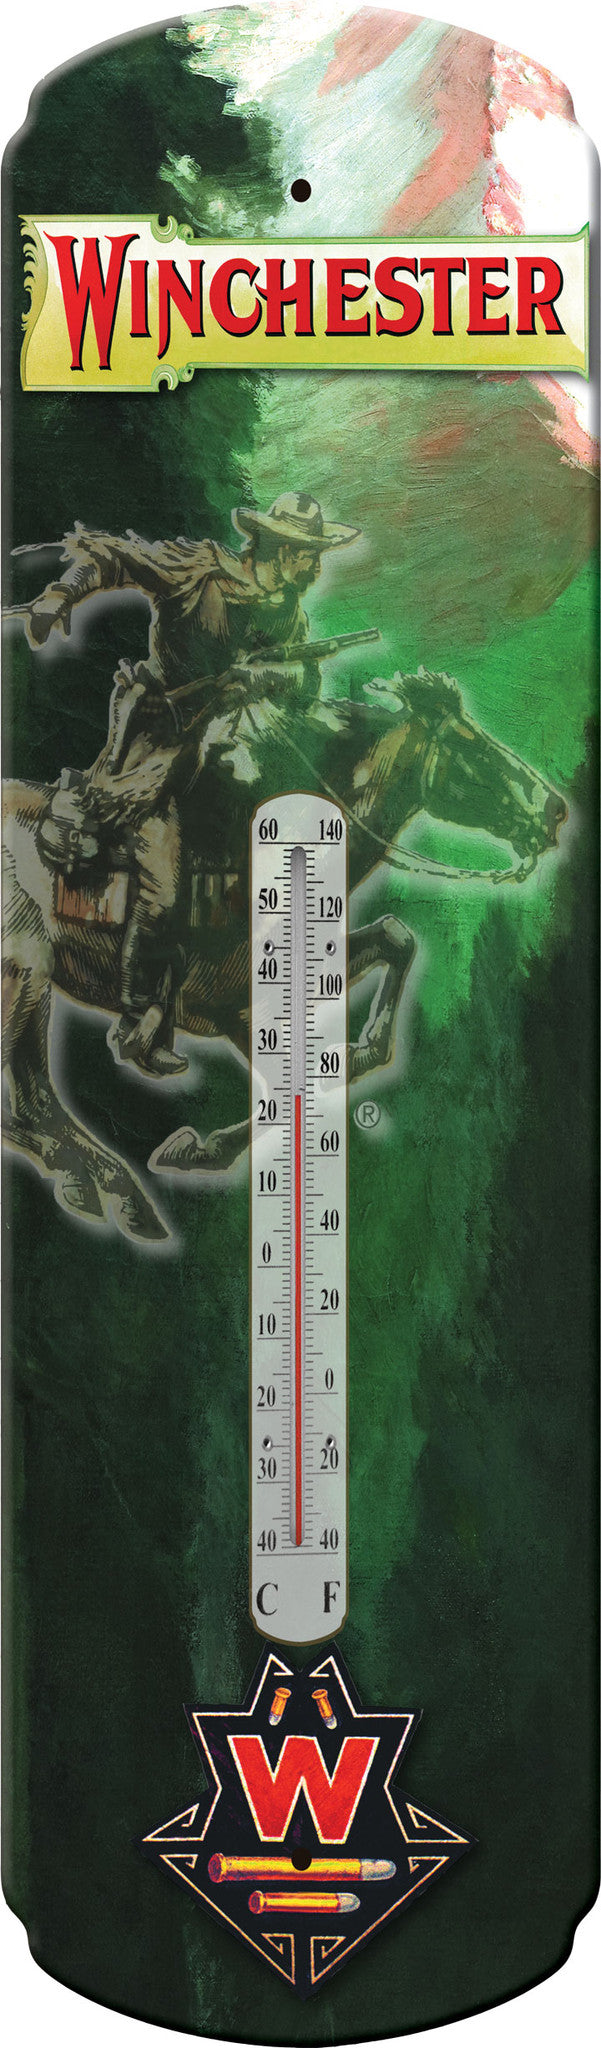 Winchester Rider Thermometer - GrayGoose Products Limited